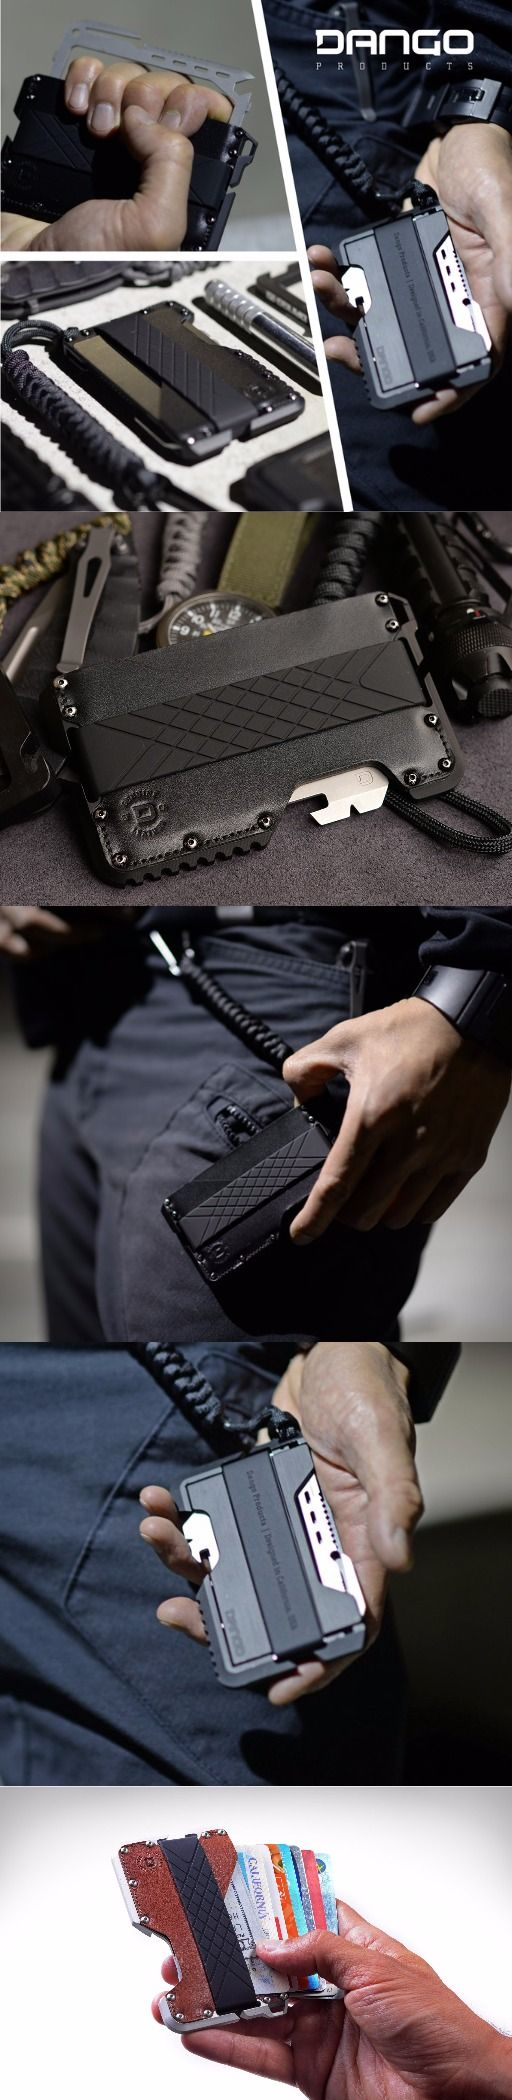 Dango Products TACTICAL MINIMALISTIC FRONT POCKET WALLET + EDC EVERYDAY CARRY MULTI-TOOL in Raw Hide Genuine Leather Raw Aluminum